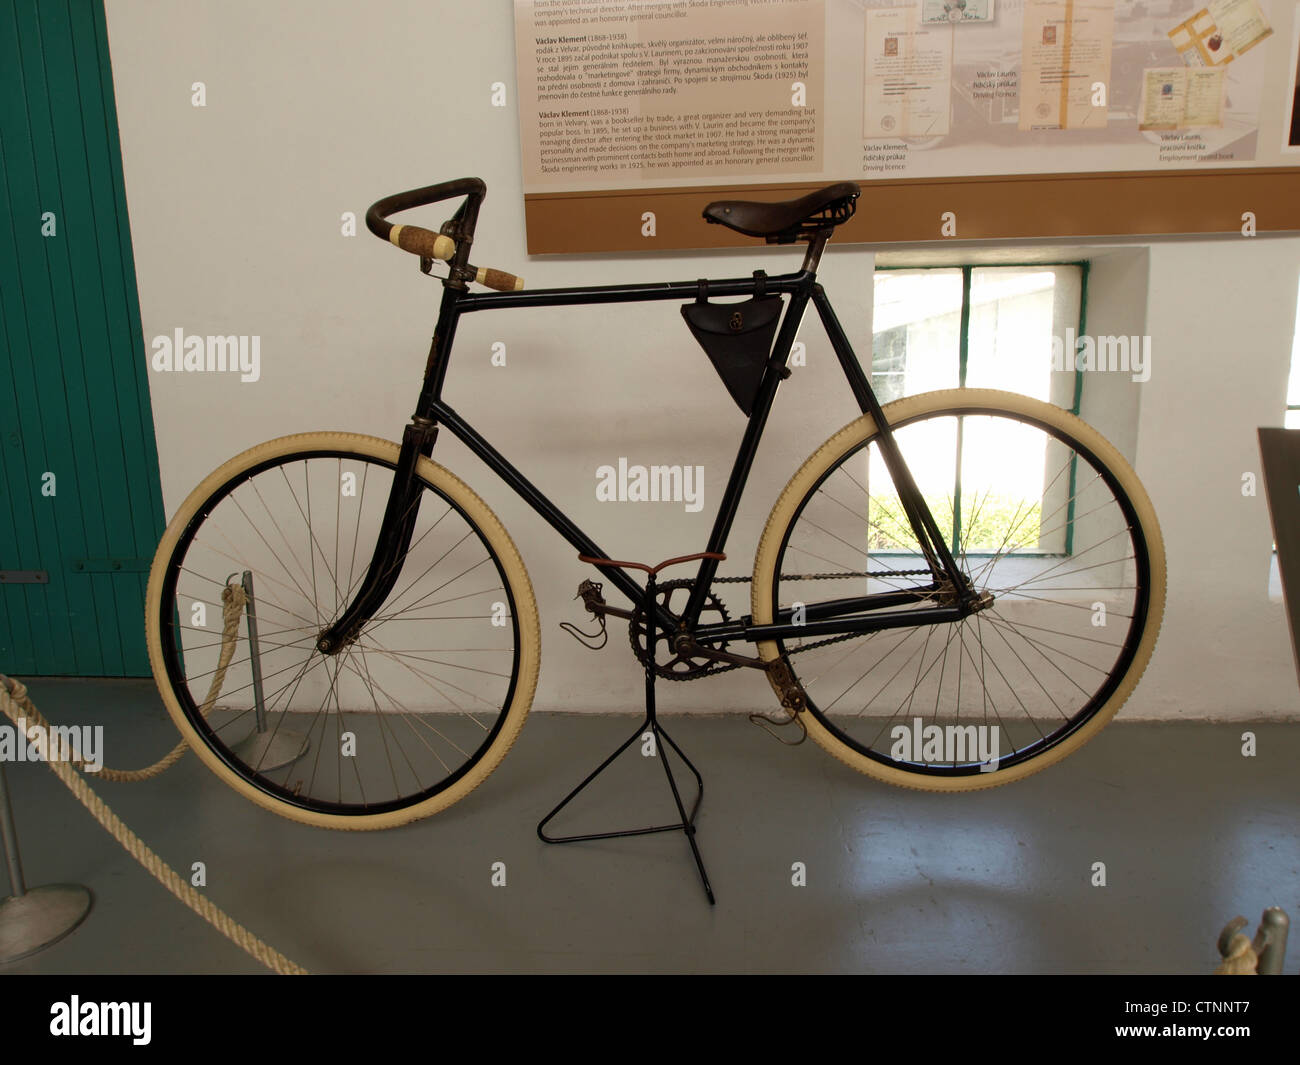 1896 Laurin & Klement, bicycle Slavia - Stock Image